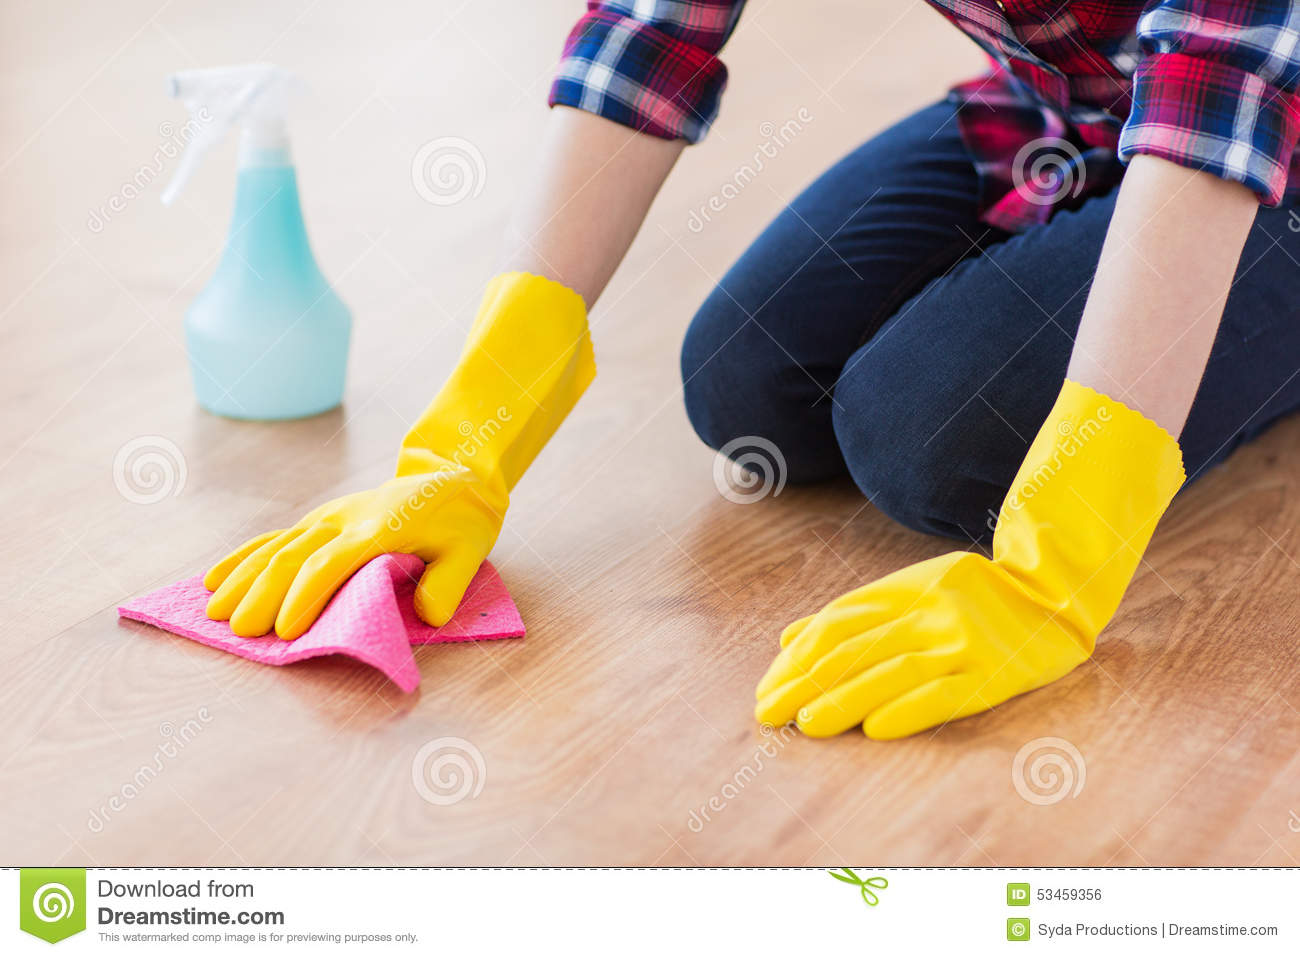 economics assignment on floor cleaning detergents The international organisation for economic co-operation and development does not suspect citric acid of being mutagenic based on both in vitro and in vivo studies low organisation for economic co-operation and development 2001.